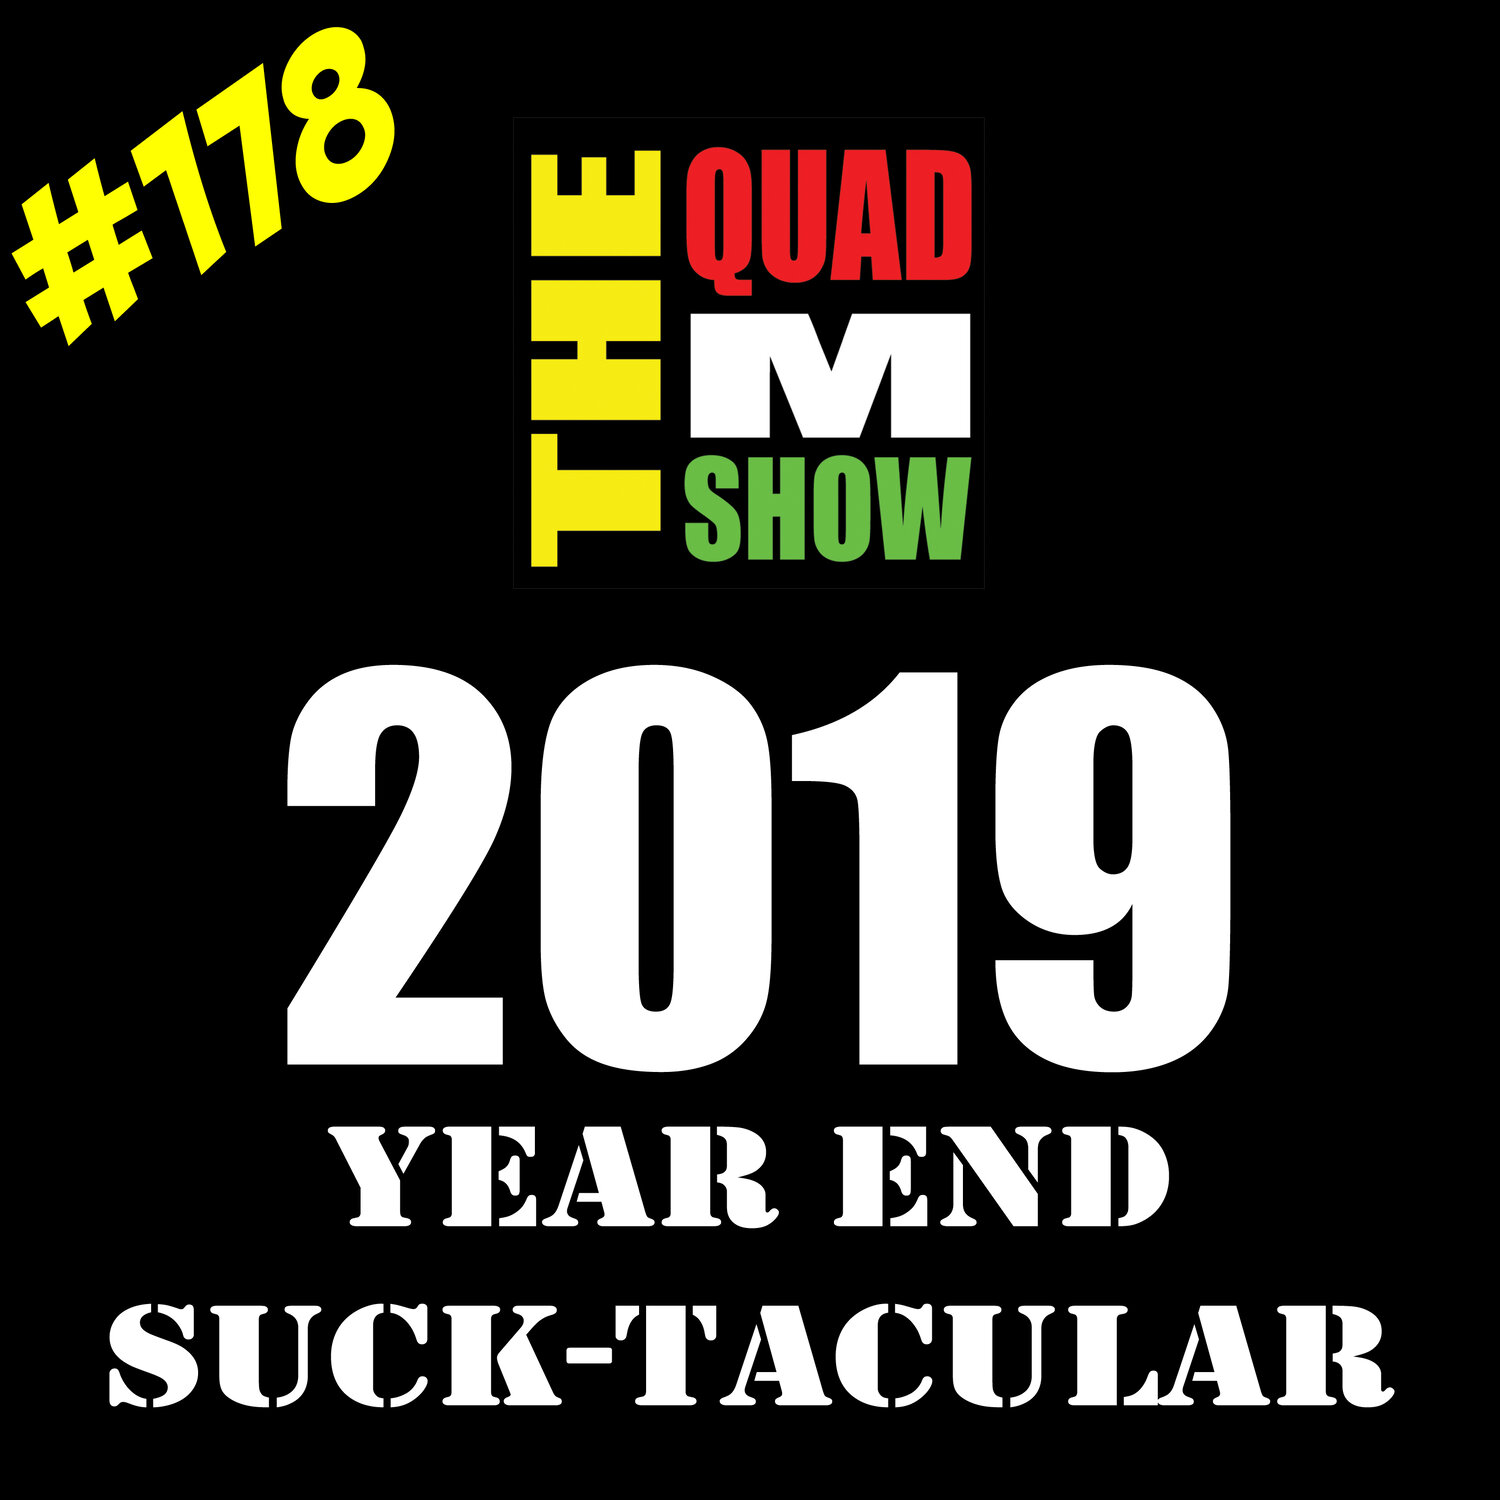 #178- The Quad M Show 2019 Year End Suck-Tacular